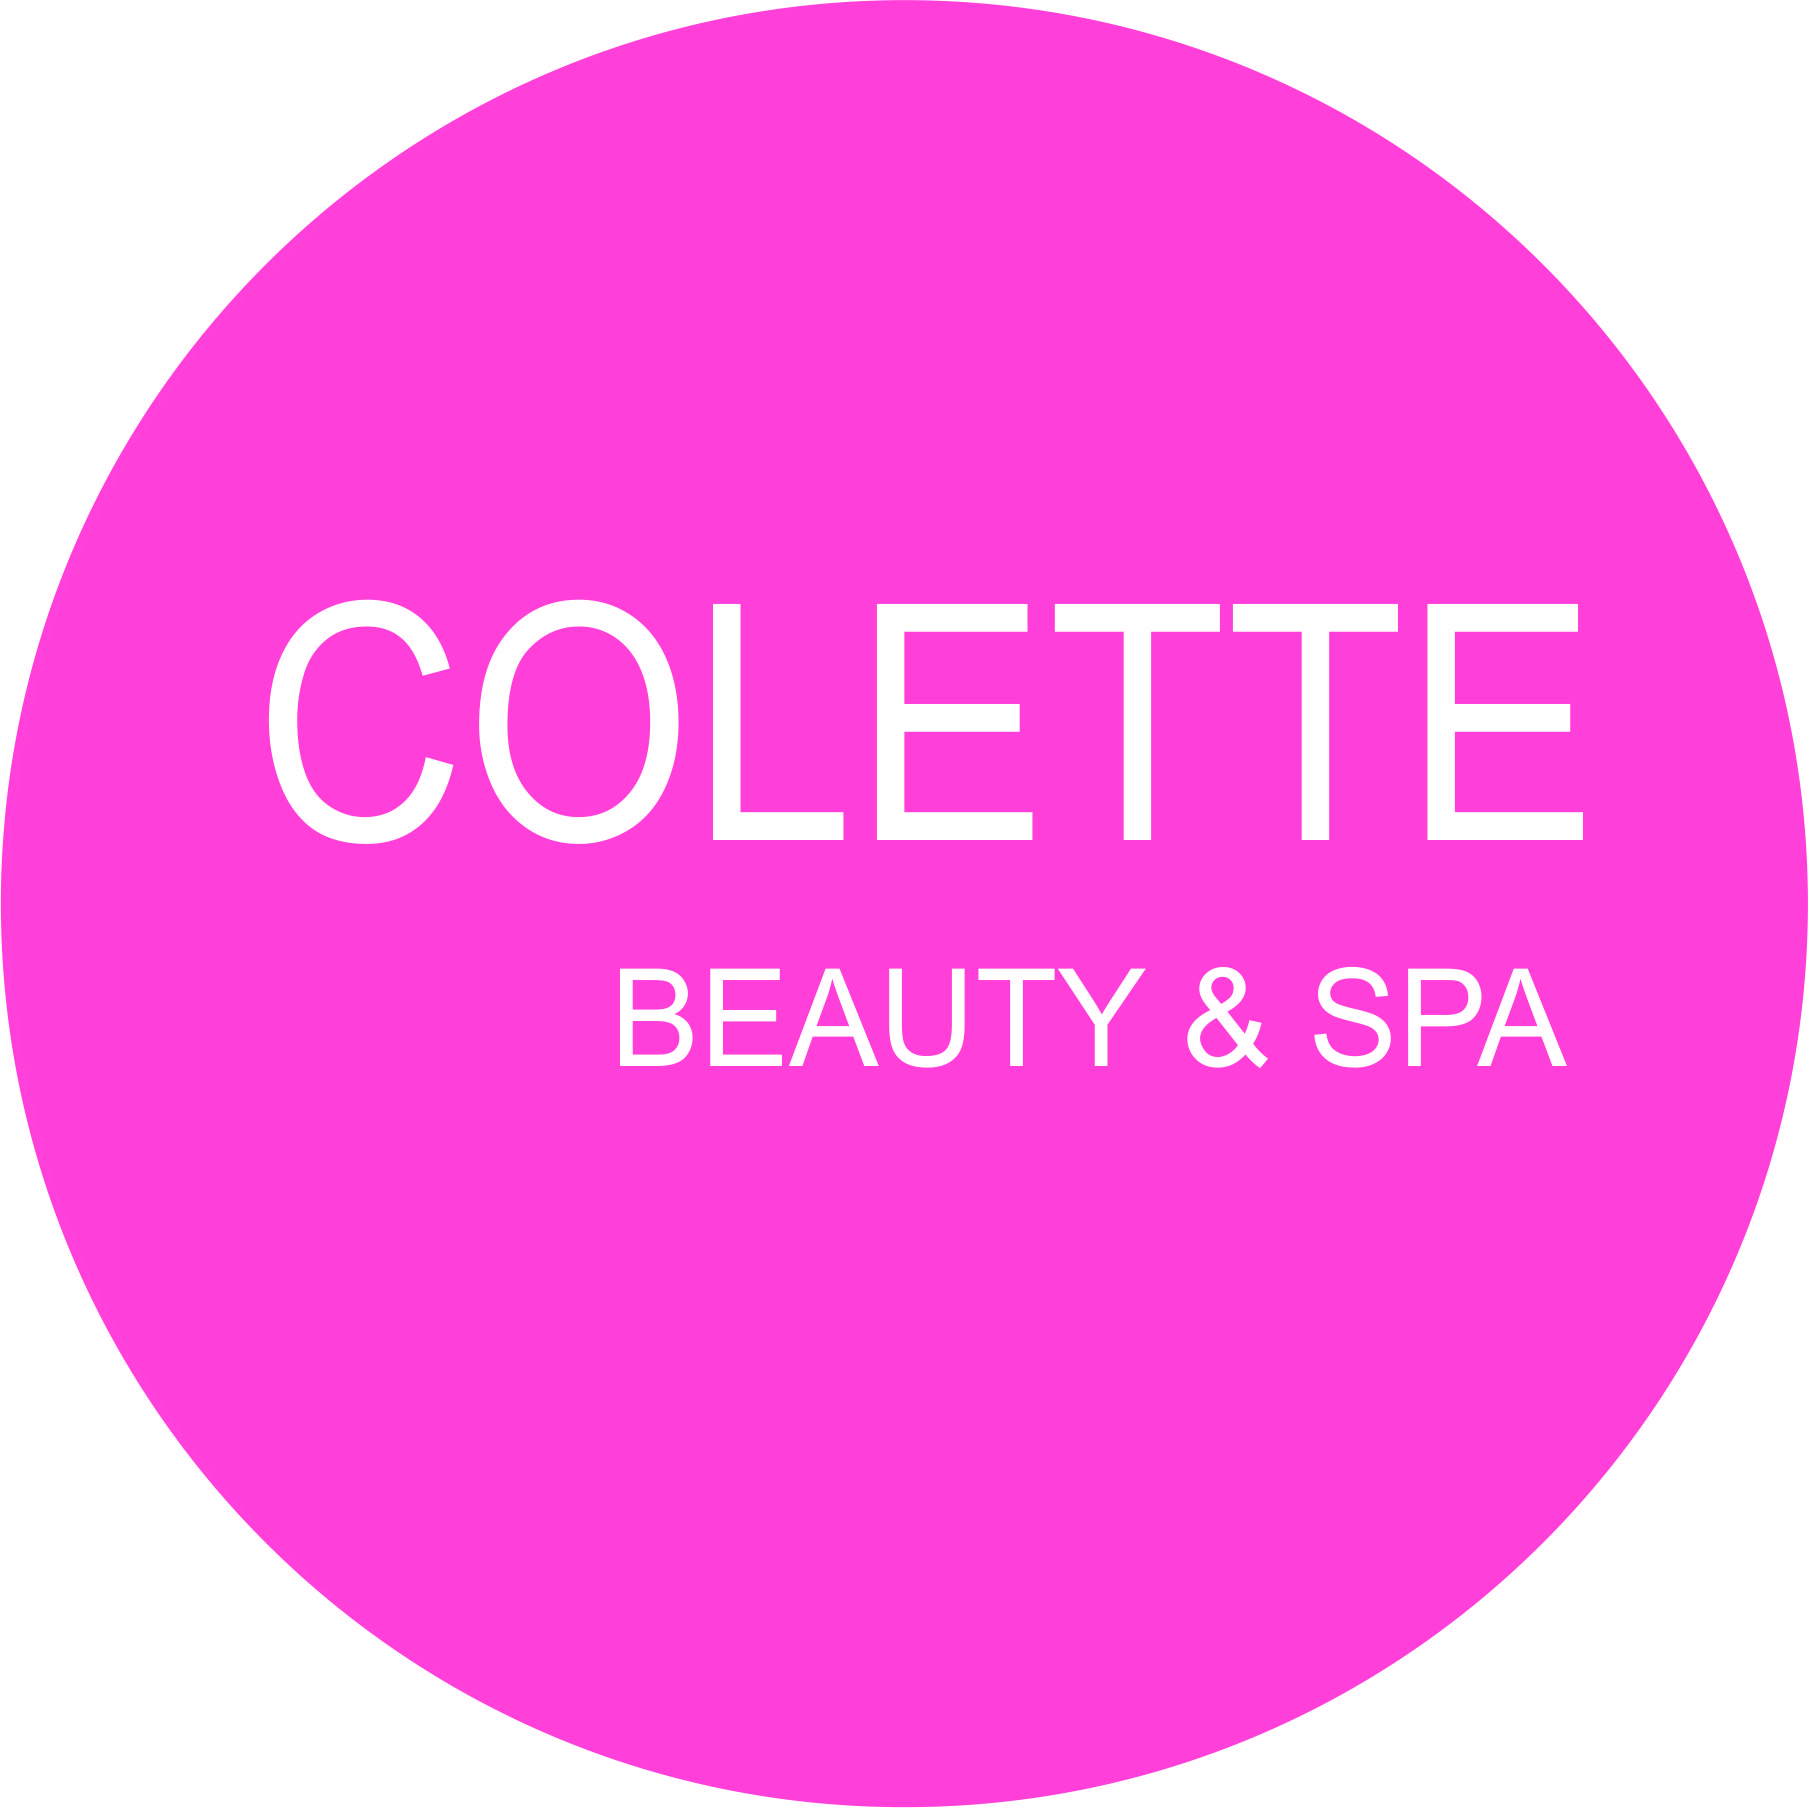 COLETTE BEAUTY SPA